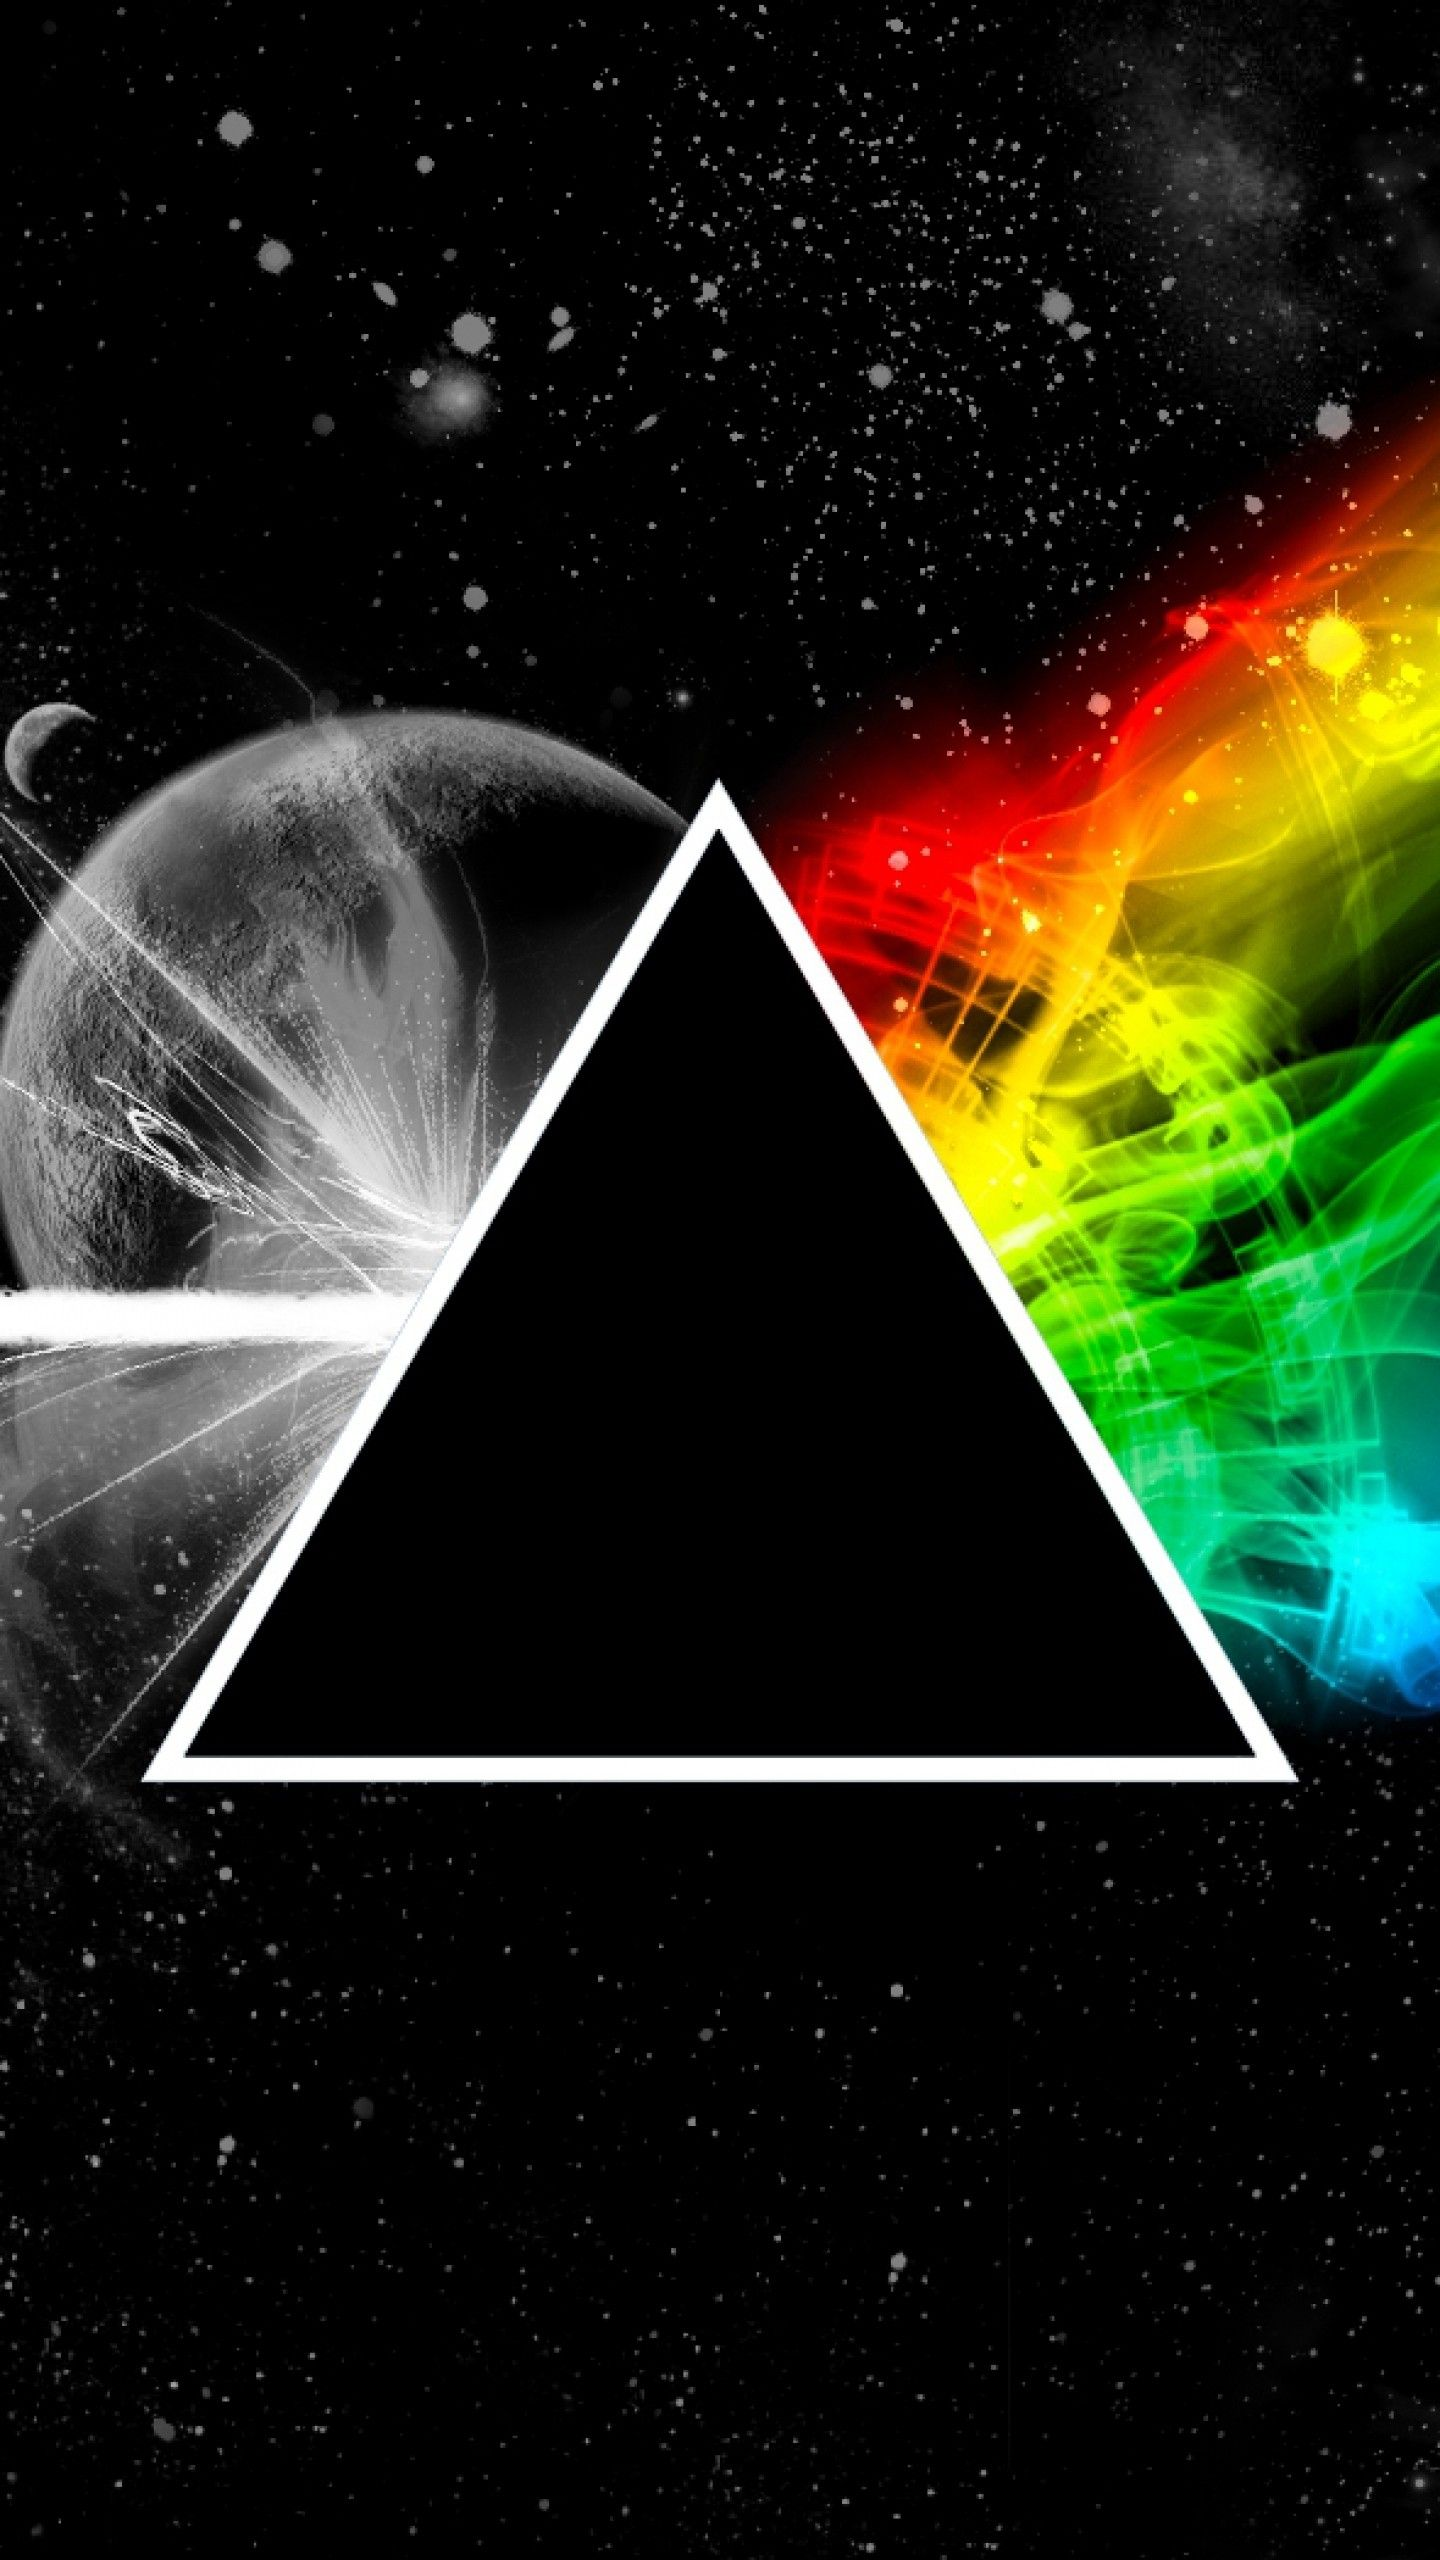 Preview Wallpaper Pink Floyd Triangle Space Planet Colors